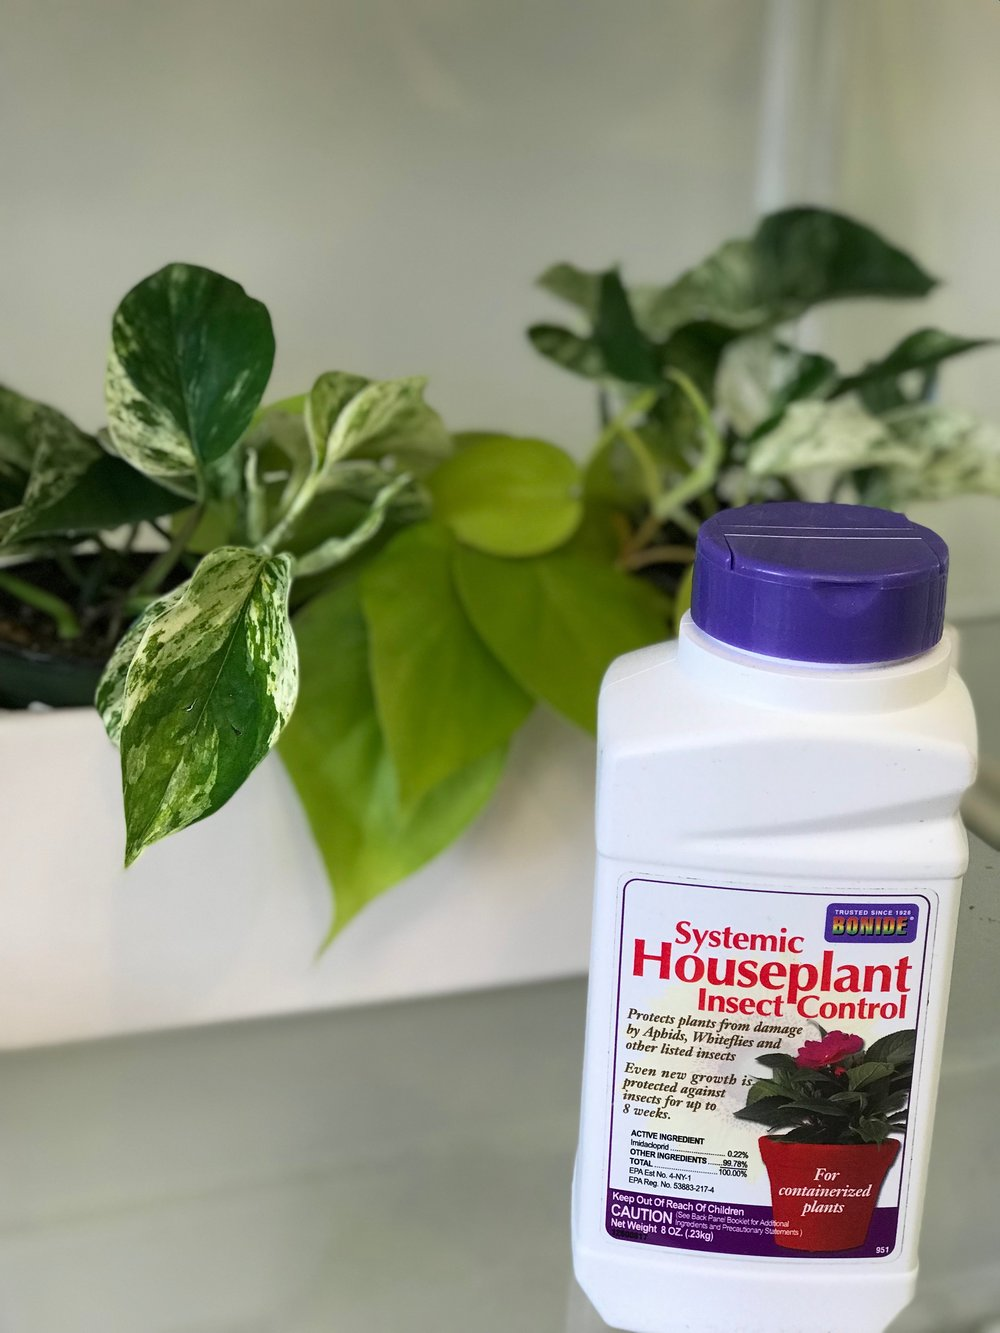 gettin' buggy - Seeing gnats? Spider mites? Aphids? Finding bugs in your dirt or on your plants is inevitable. But don't freak out! I assess my collection weekly for early identification and treatment to keep infestations at bay. These granules are sprinkled on your topsoil and watered in every 2 months or so.